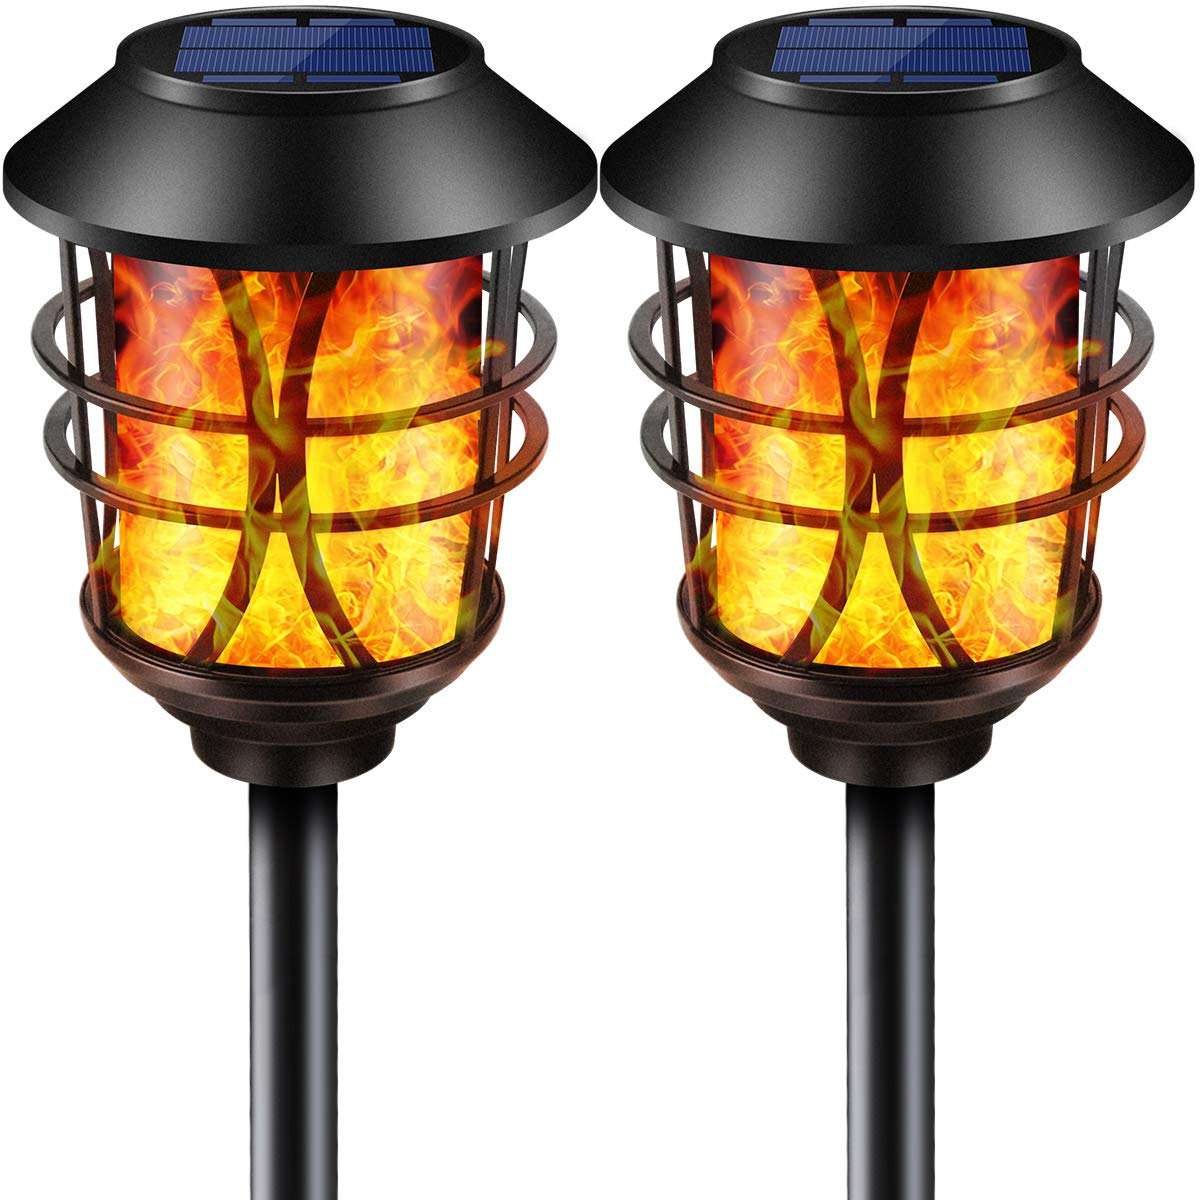 TomCare Solar Lights Metal Flickering Flame Solar Torches Lights Waterproof Outdoor Heavy Duty Lighting Solar Pathway Lights Landscape Lighting Dusk to Dawn Auto On/Off for Garden Patio Yard, 2 Pack by TomCare